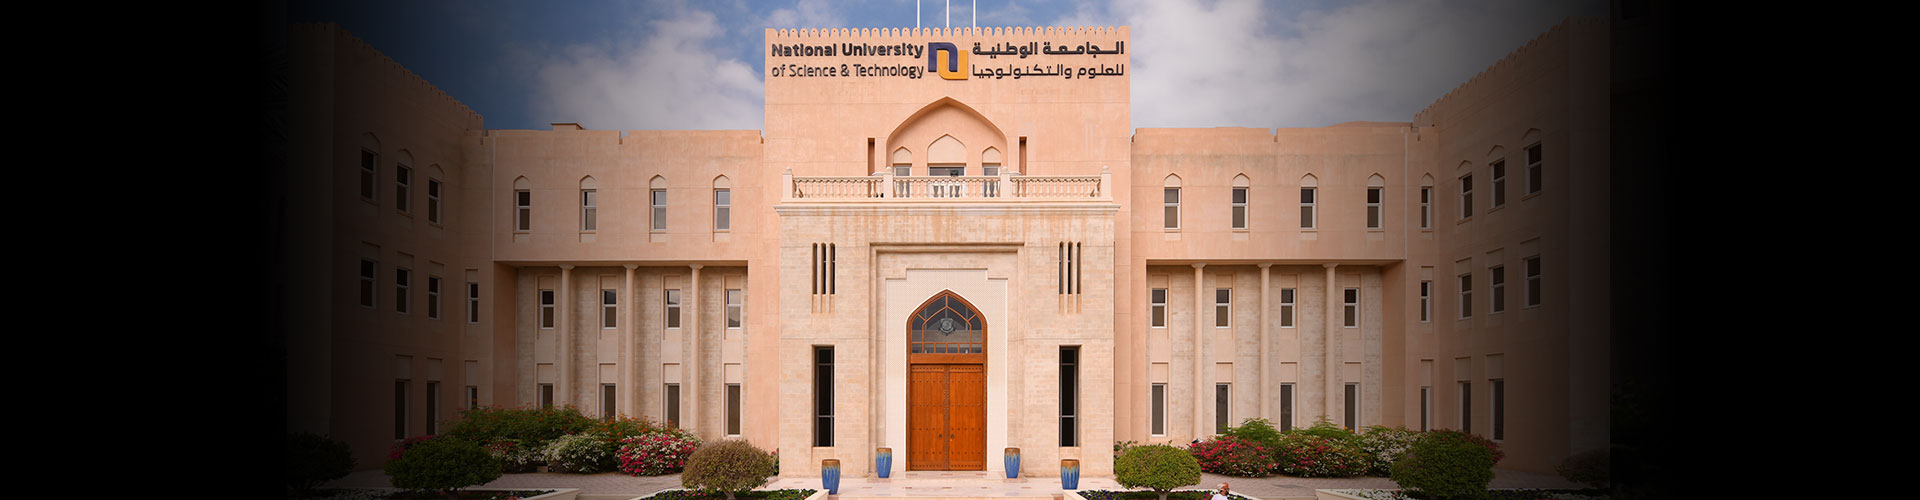 National University of Science and Technology